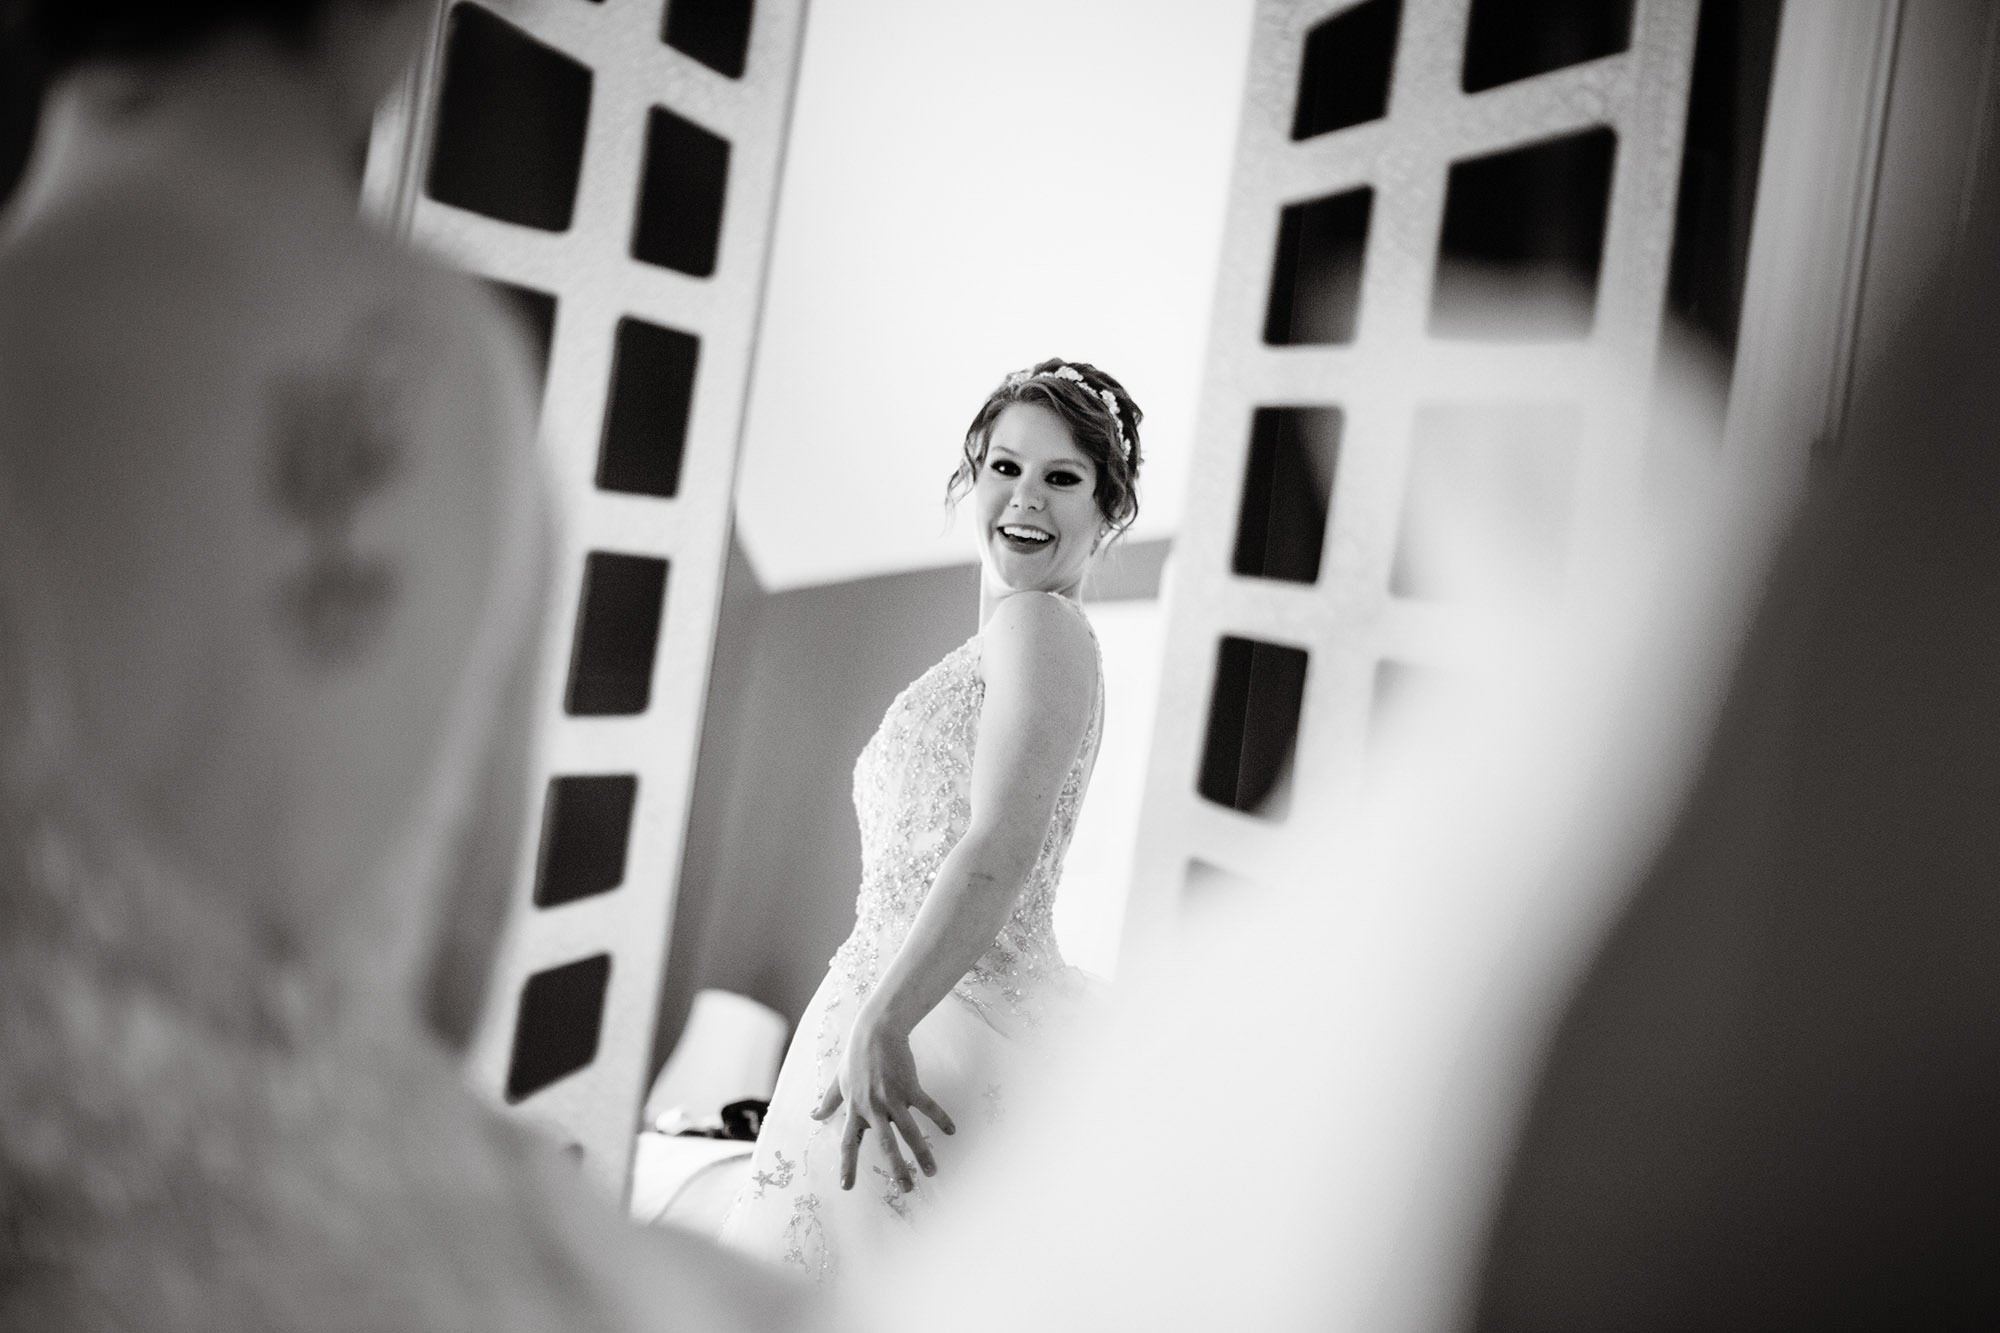 The bride shows off her dress prior to the ceremony at her Oaks Waterfront Inn Wedding.